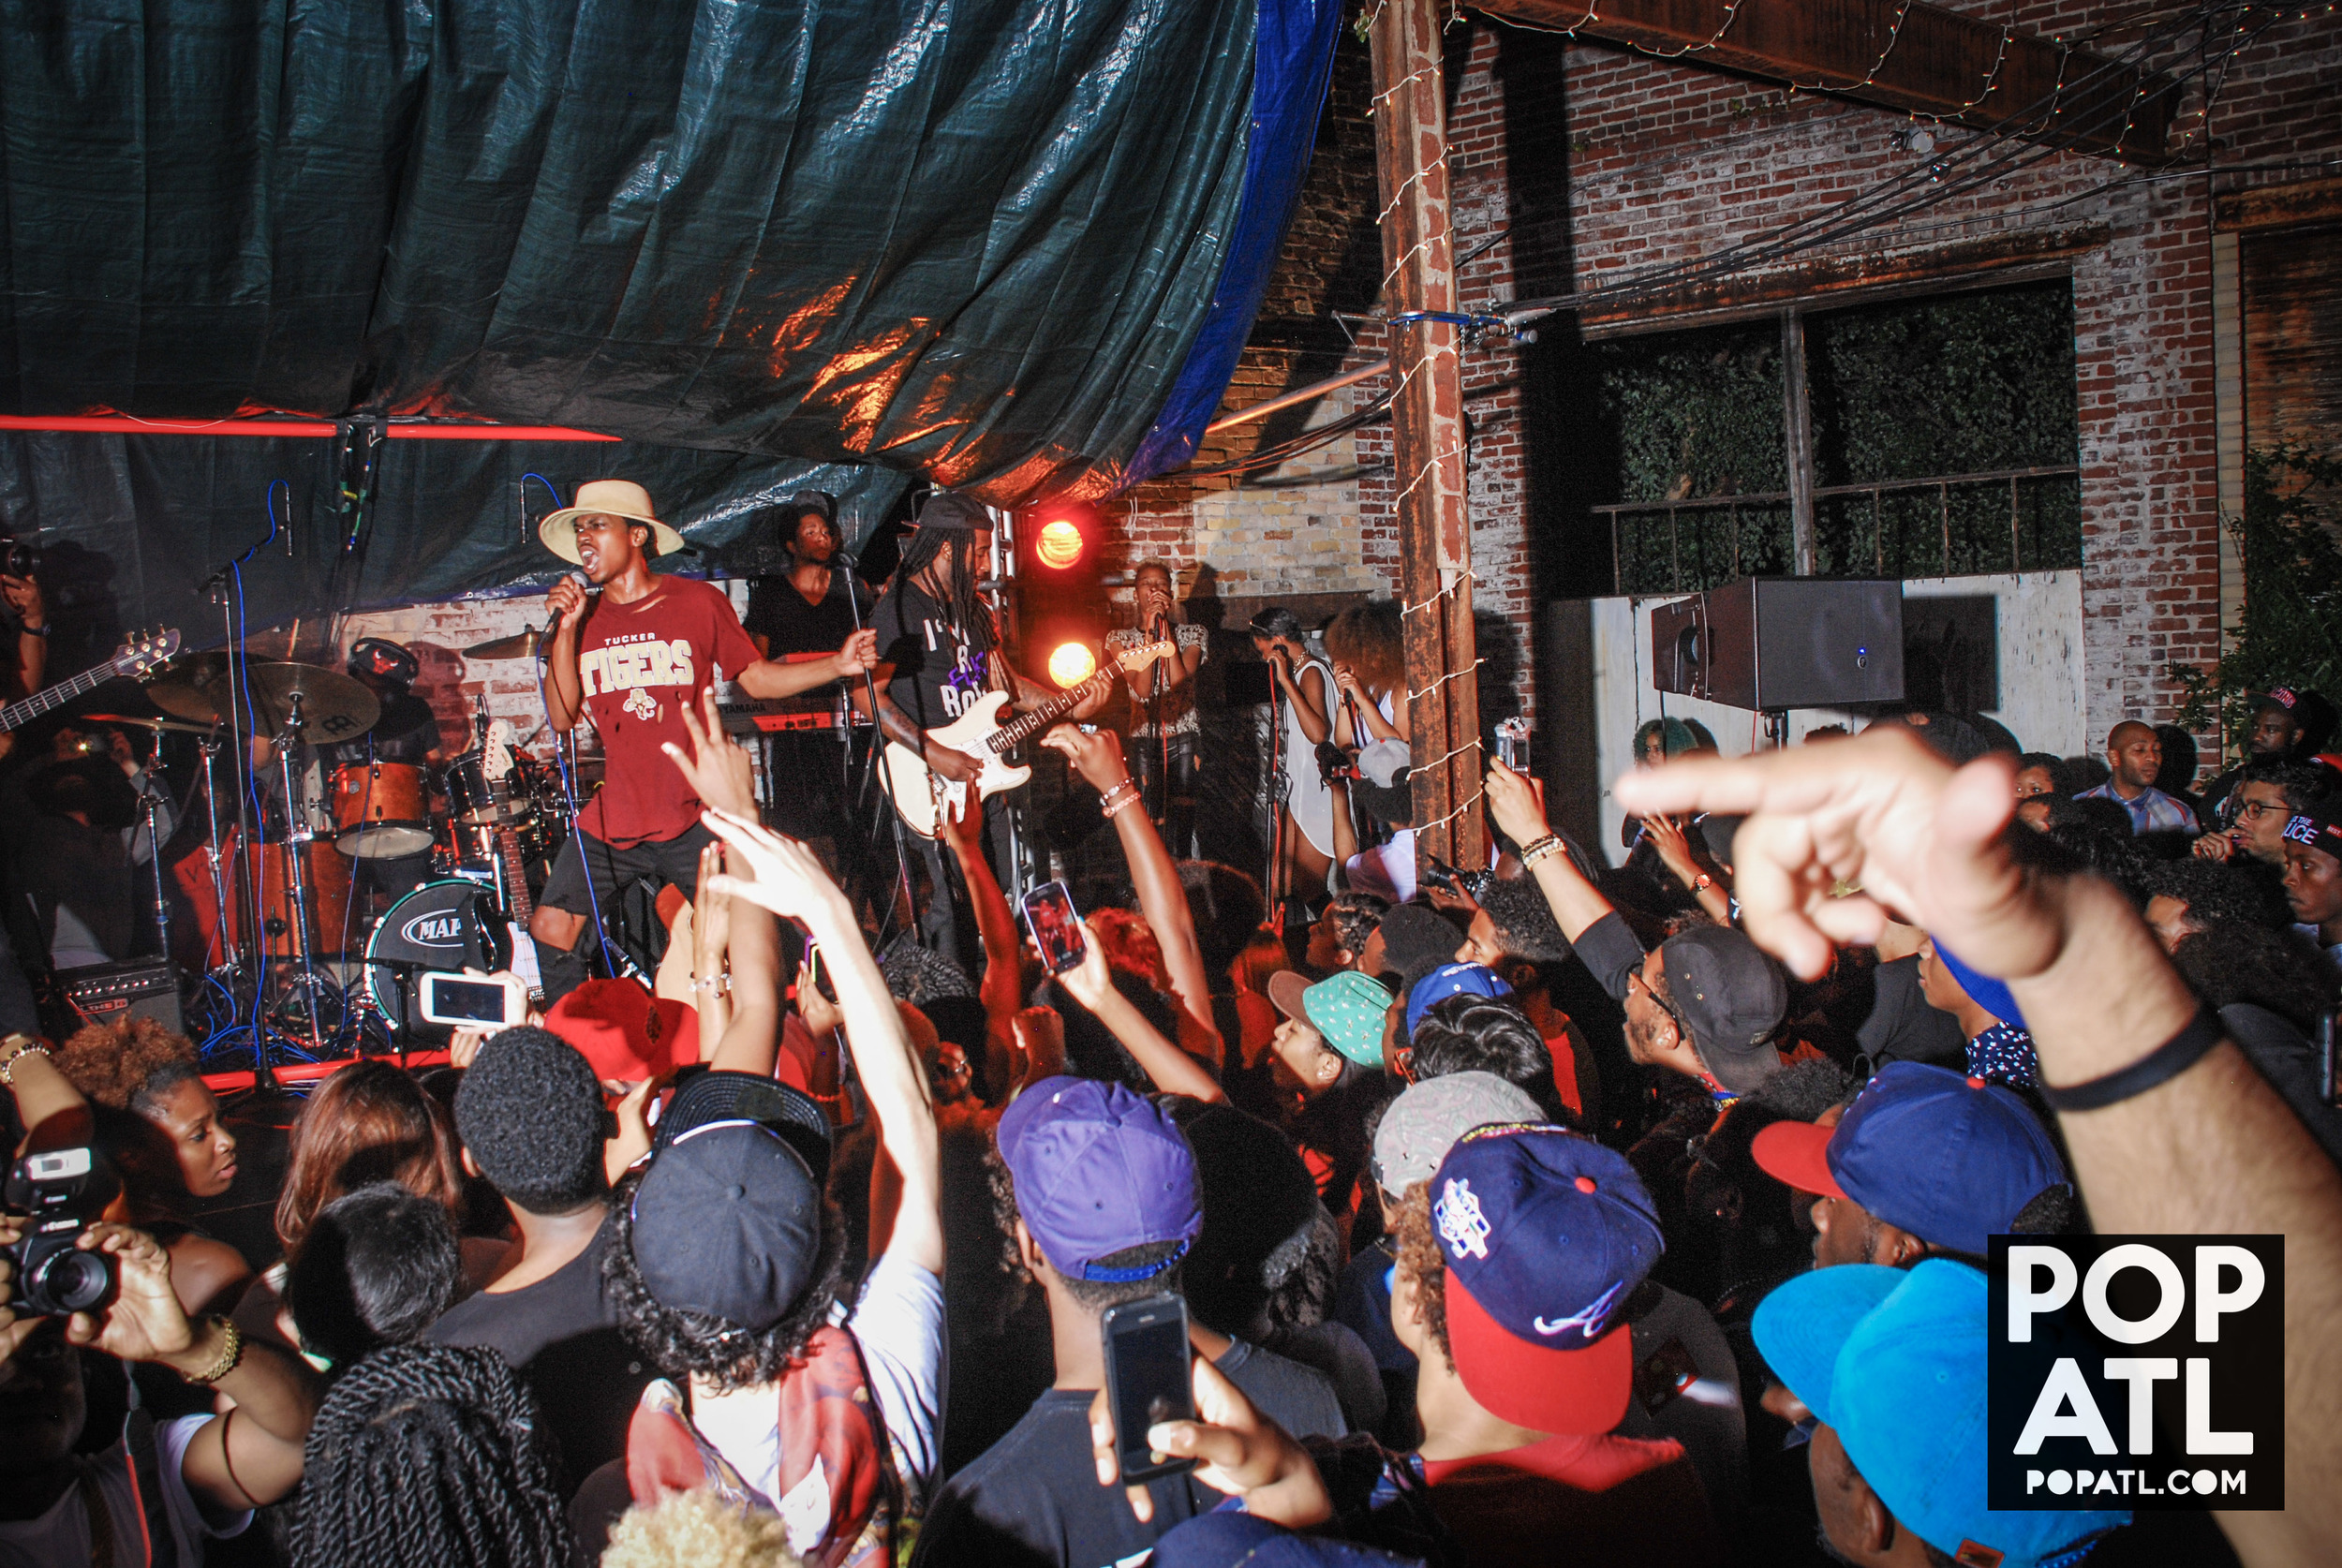 RAURY-RAURFEST-AT-POP-ATL-156.jpg